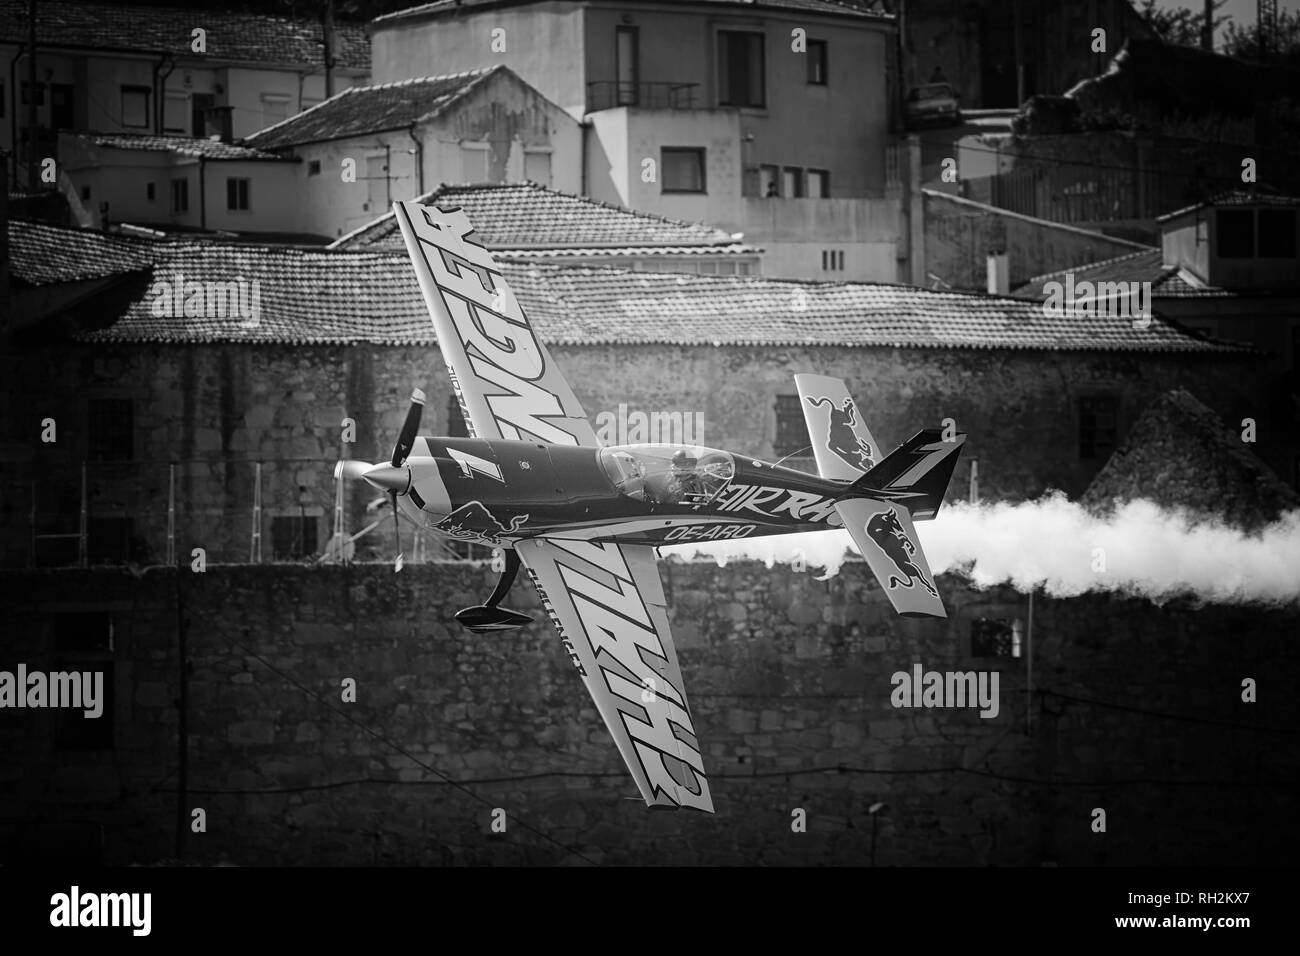 Porto, Portugal - September 1, 2017: Red Bull air race. Training day. Airplane in a tight maneuver on the Vila Nova de Gaia bank of the Douro river. - Stock Image